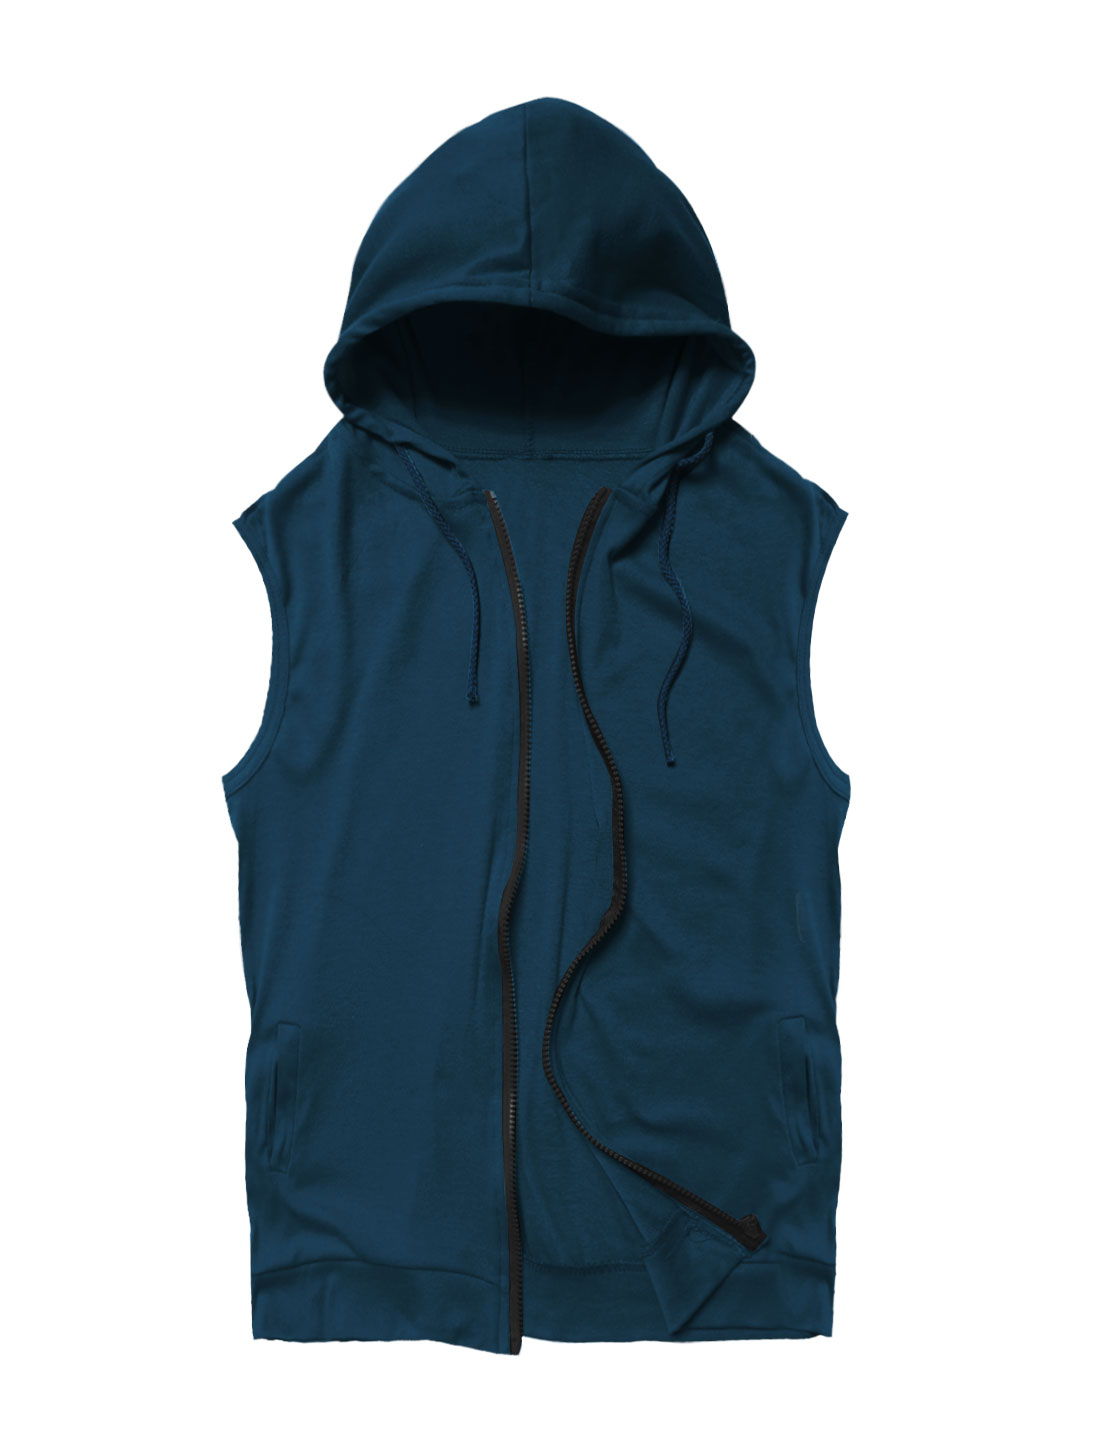 Man Hooded Sleeveless Double Pockets Casual Vests Navy Blue S